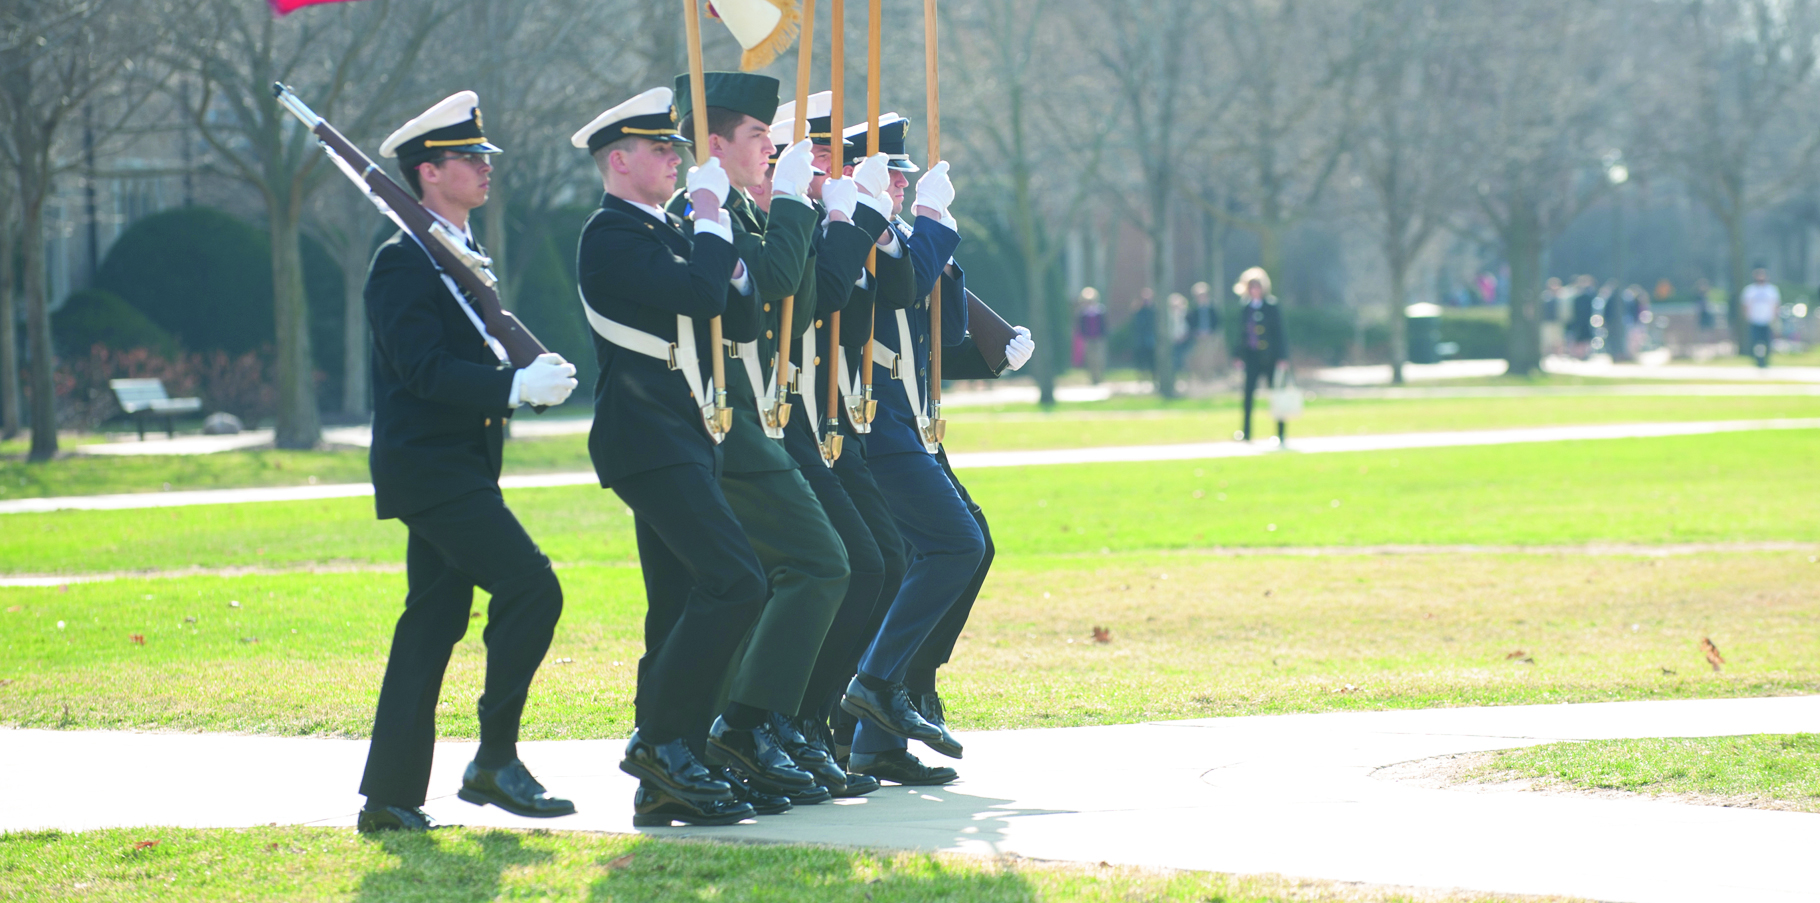 Members of the Navy ROTC participate in the Pass and Review on South Quad on April 9. ROTC members will participate in a 24-hour vigil at the Clarke Memorial Fountain for Veterans Day.